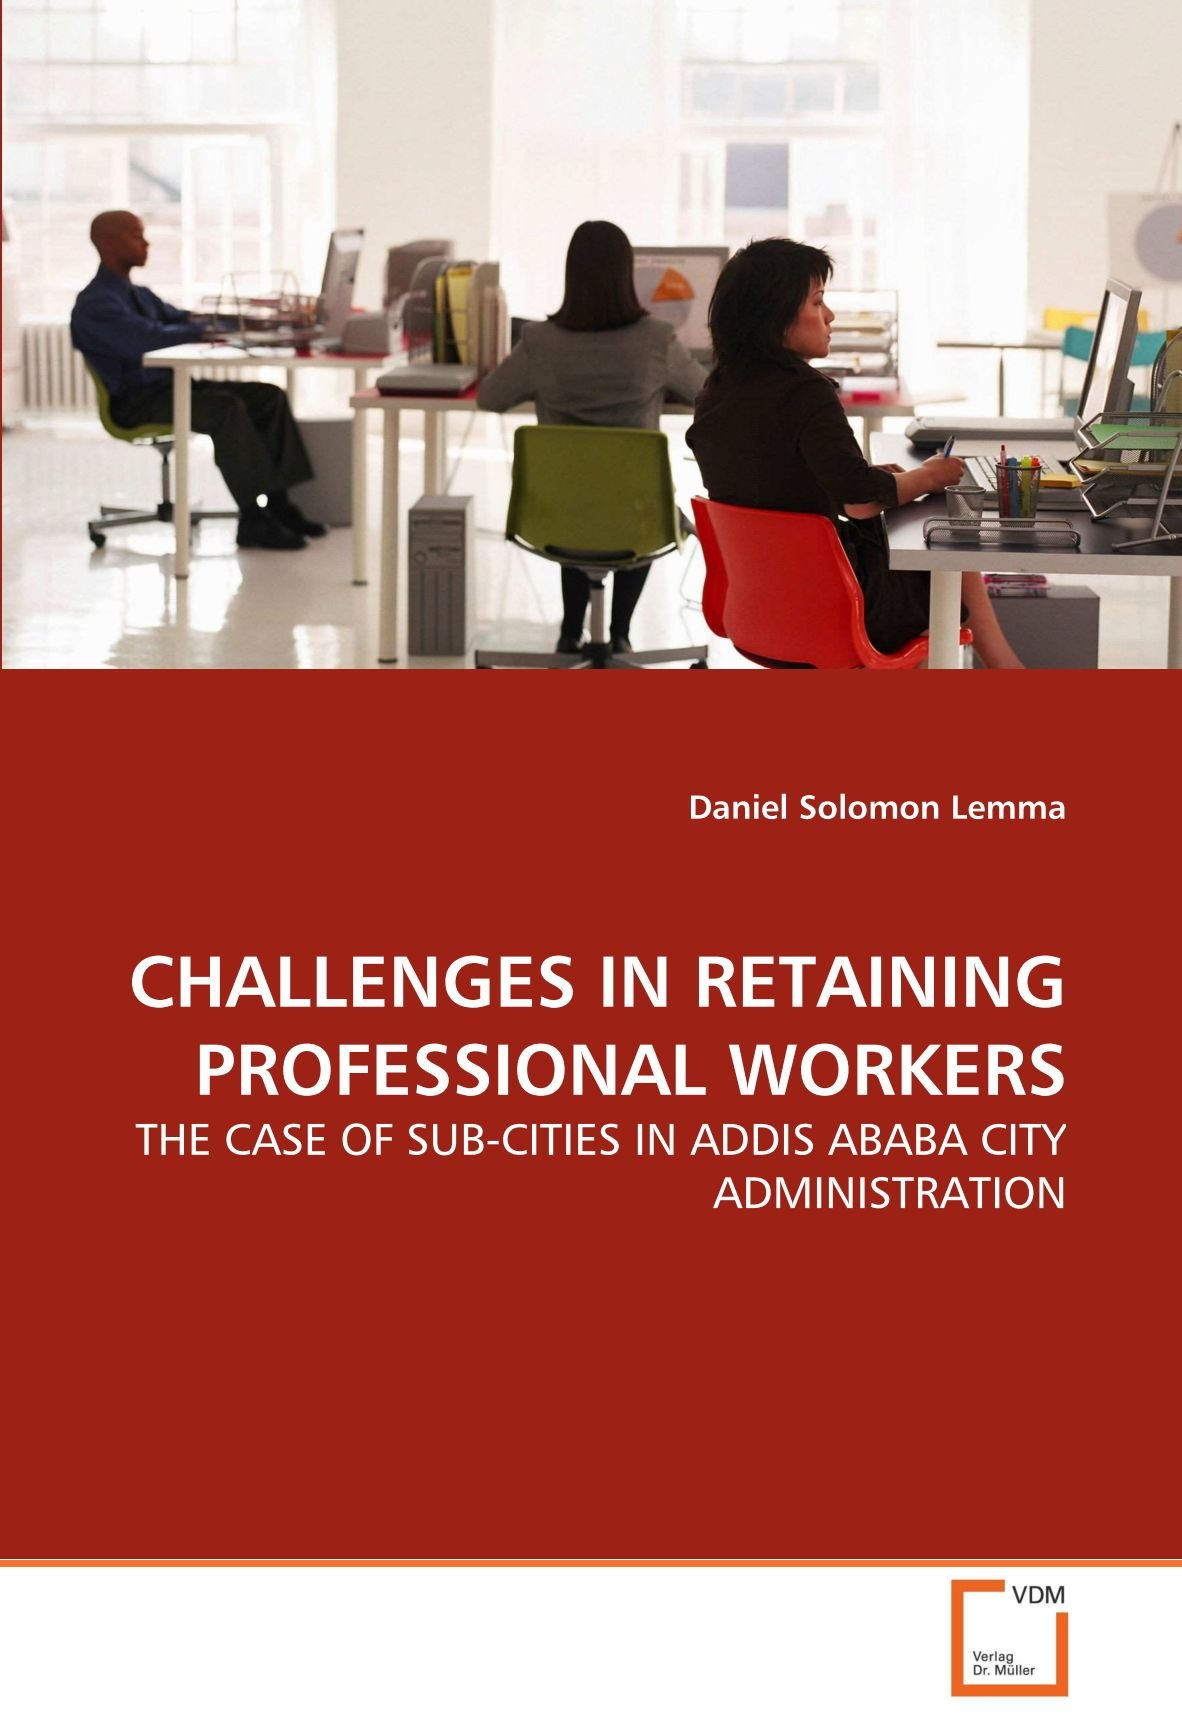 CHALLENGES IN RETAINING PROFESSIONAL WORKERS: THE CASE OF SUB-CITIES IN ADDIS ABABA CITY ADMINISTRATION ebook